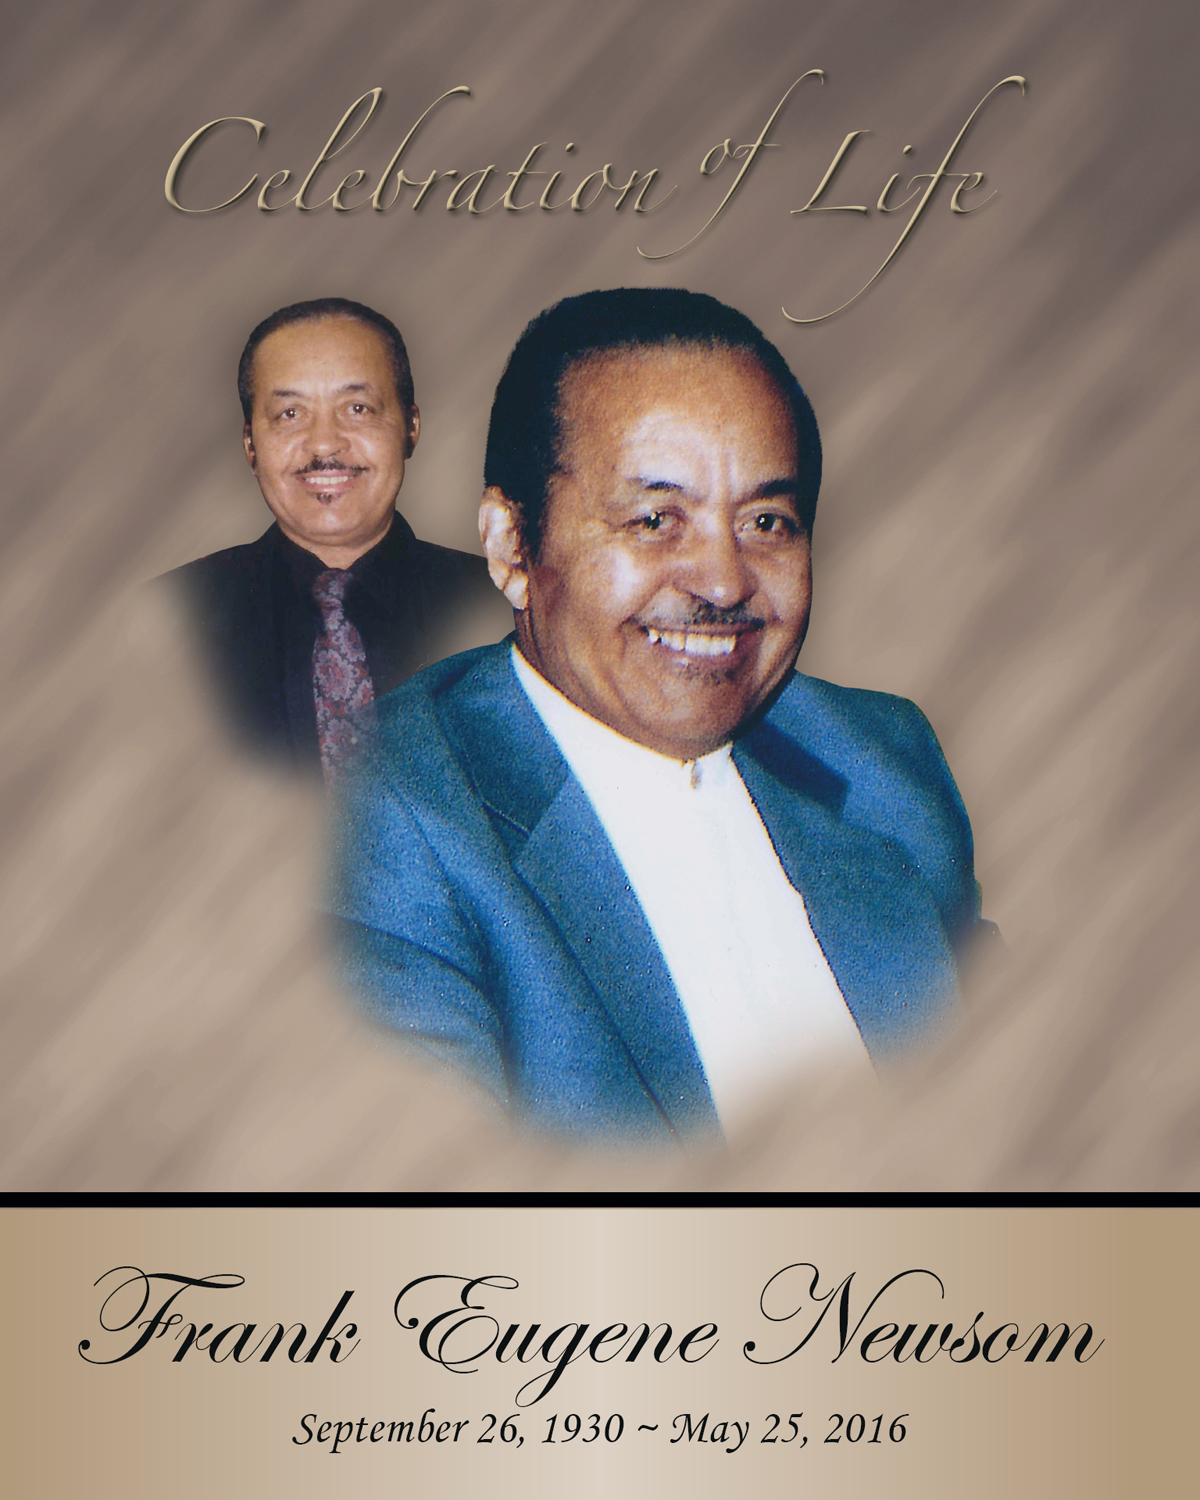 In Loving Memory of Frank Eugene Newsom